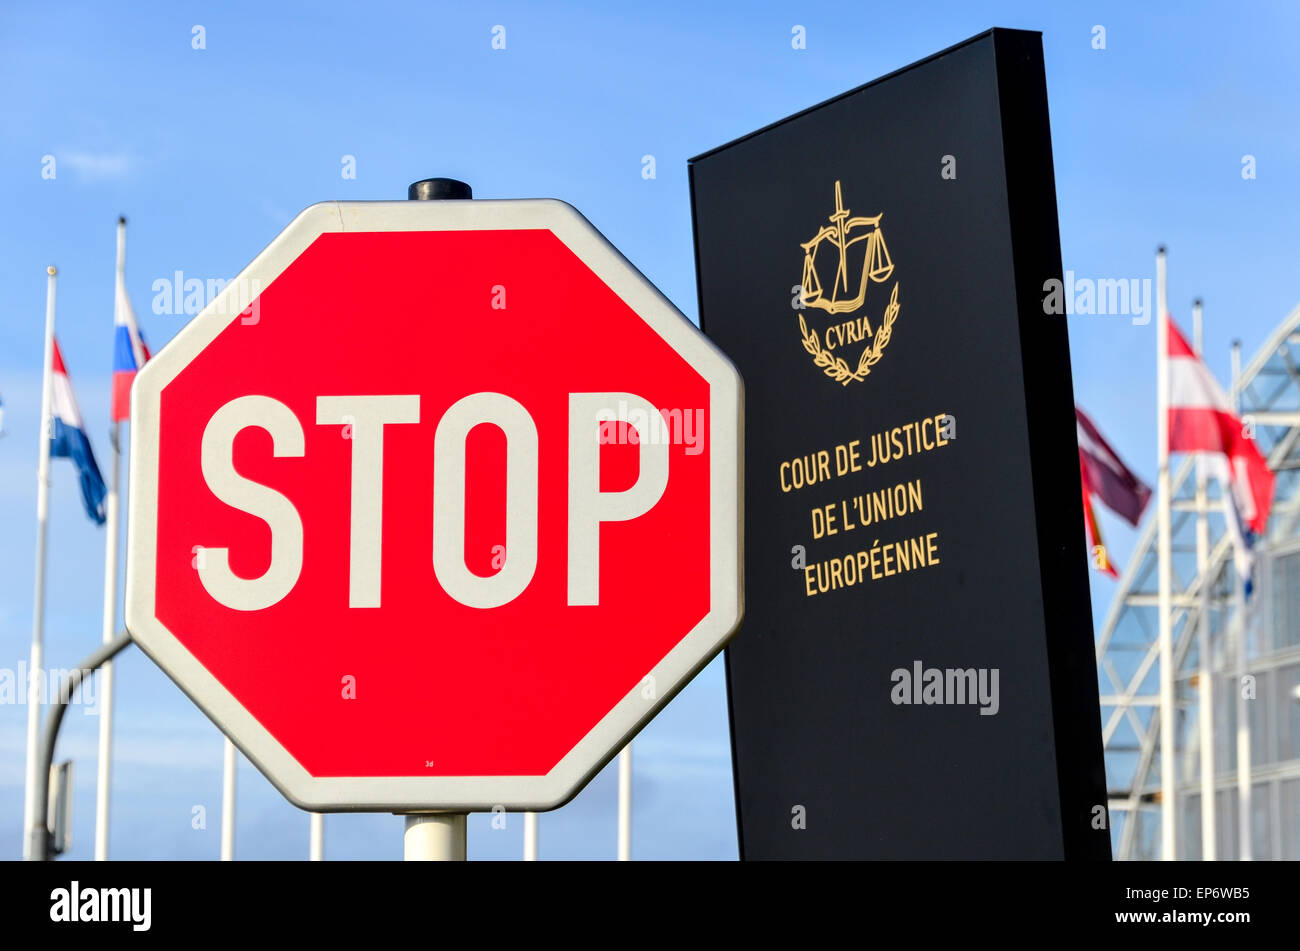 STOP sign in front of the entrance of the Court of Justice of the European Union, in European Quarter, Kirchberg, - Stock Image